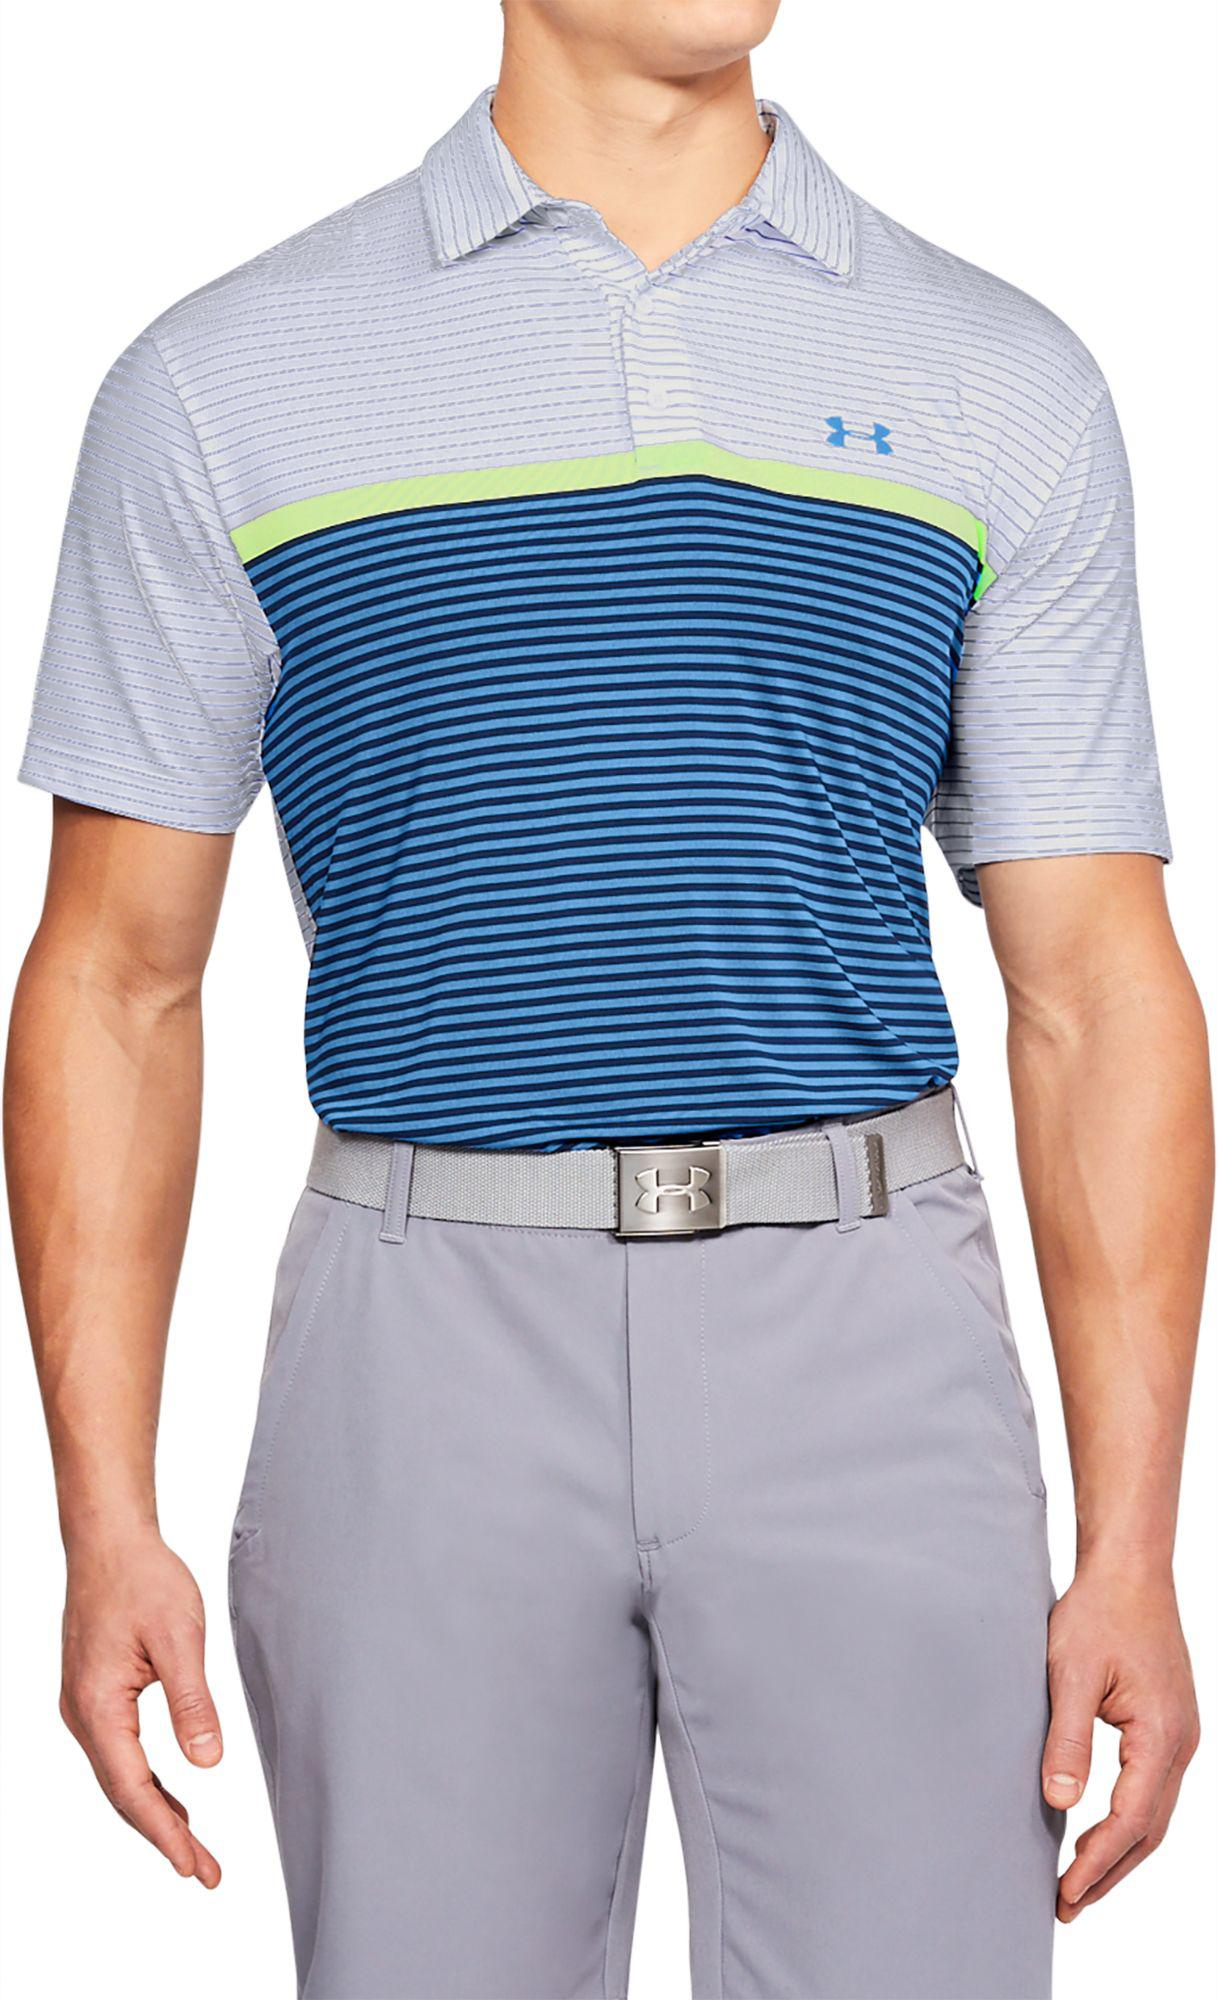 a700f248c6 Under Armour Playoff Super Stripe Golf Polo in Blue for Men - Lyst